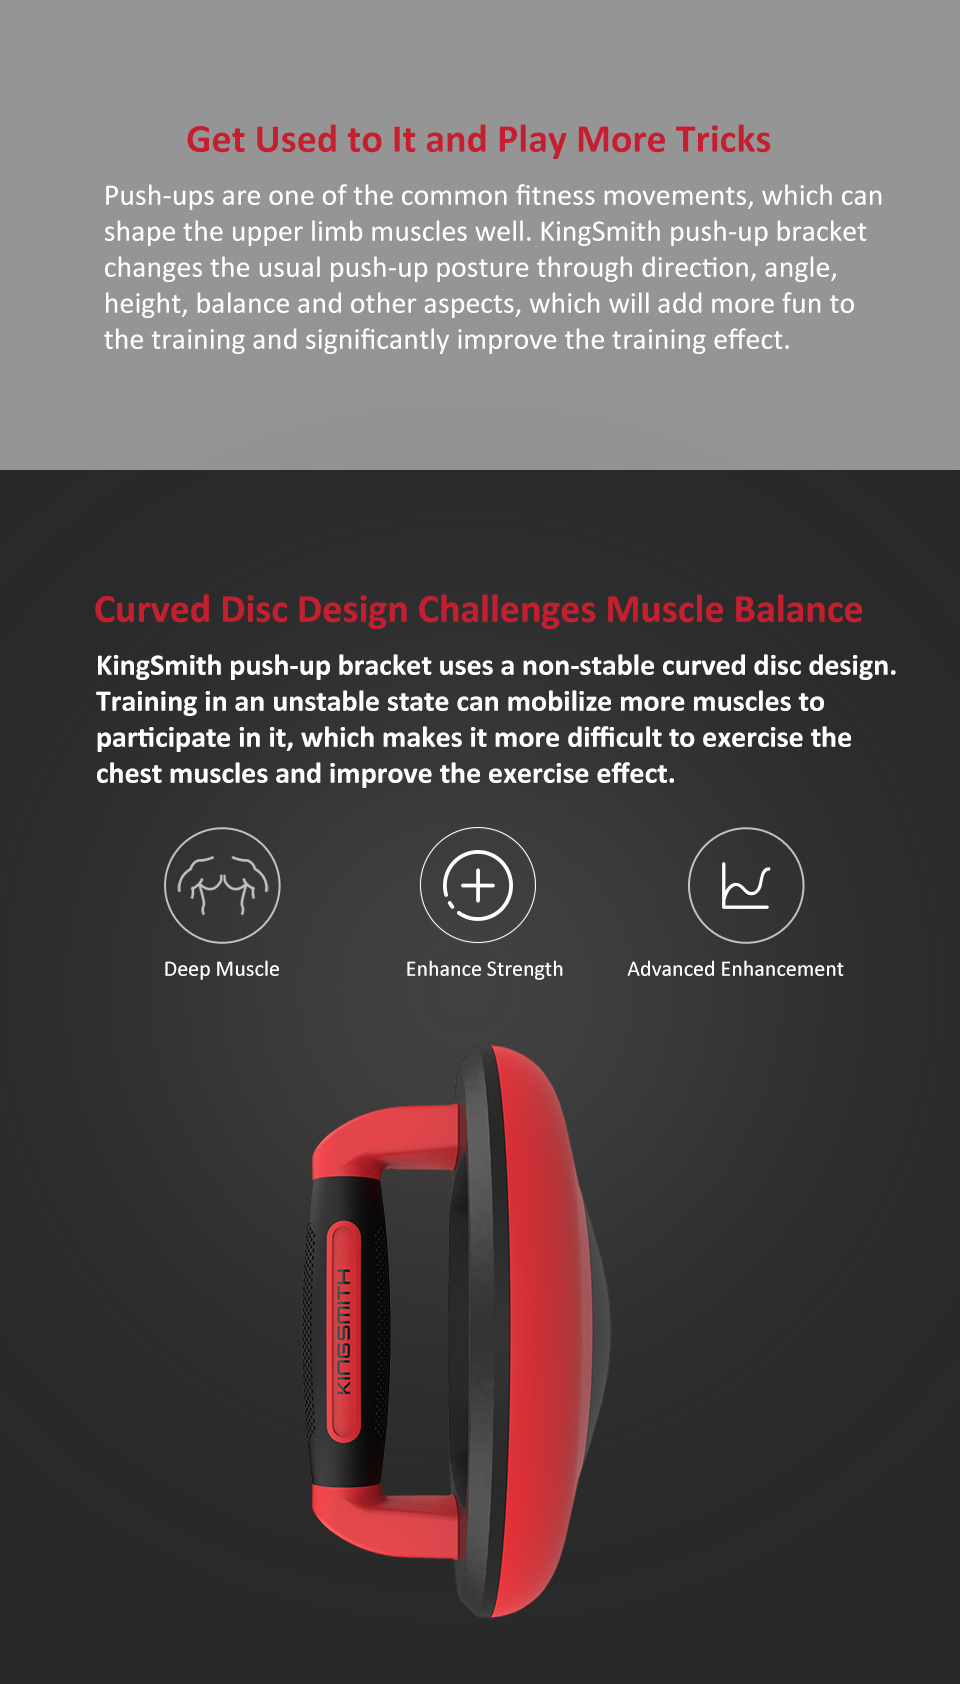 KINGSMITH Push-up Bracket Indoor Outdoor Sports Push Up Stand Rotated Curved Disc Removable Chassis Support Fitness Equipment For Arms Back Belly Core Training From Xiaomi Youpin - Red